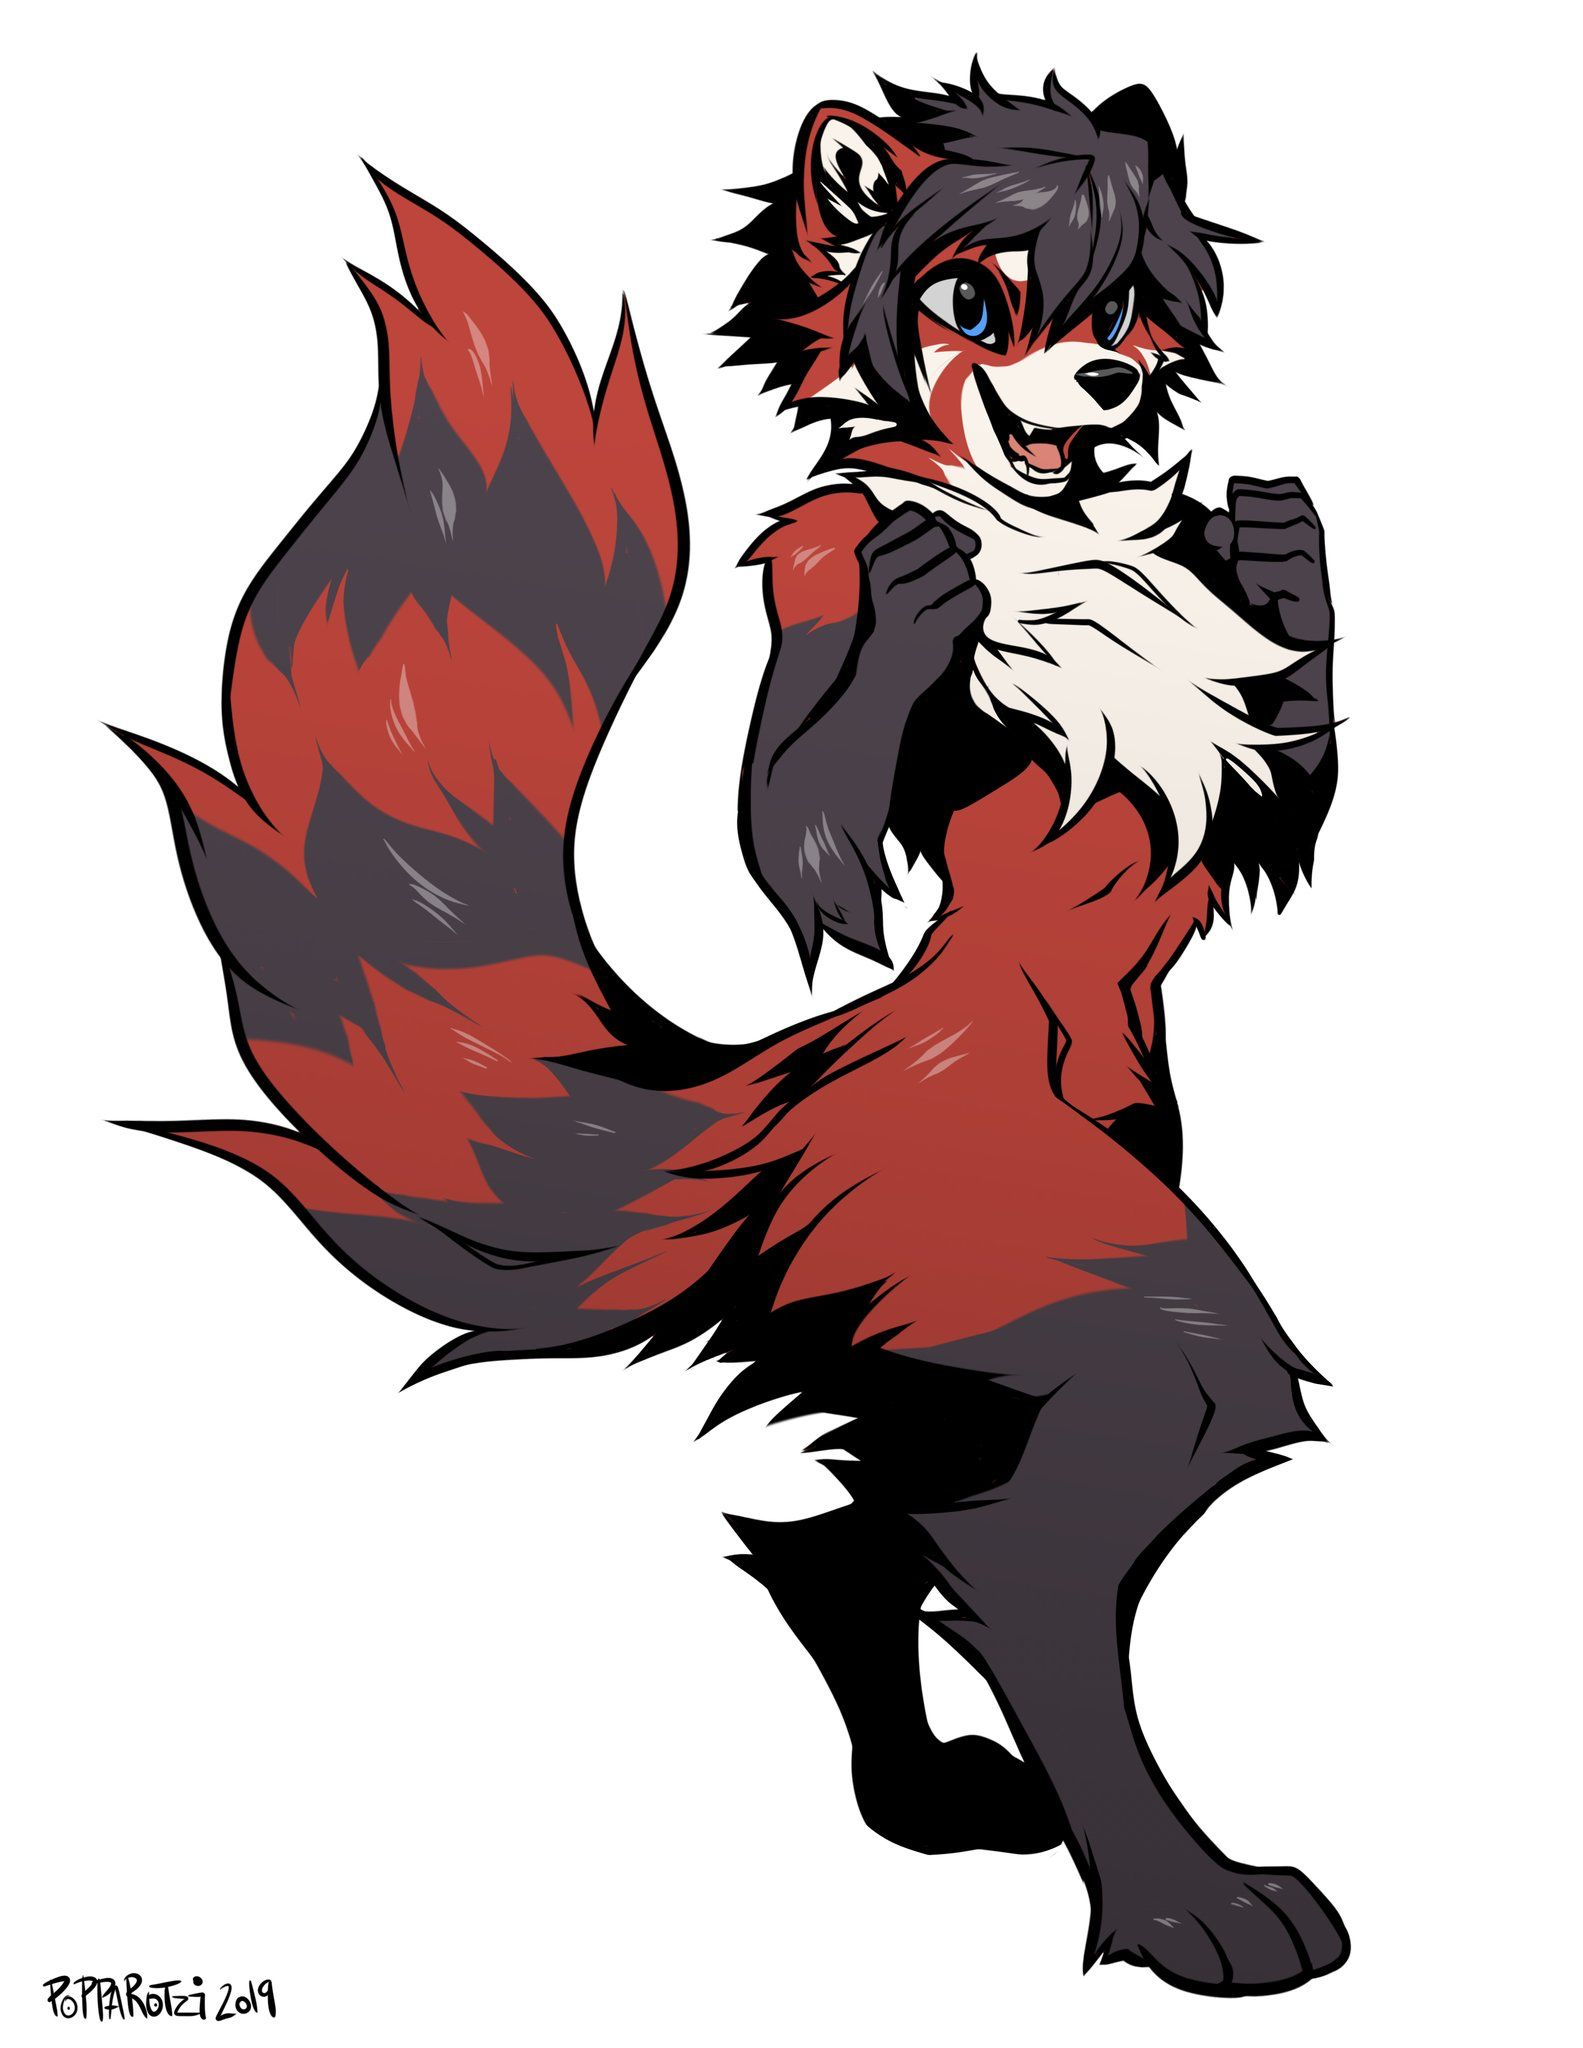 Pin By Beau On Anthro Artwork Anime Furry Furry Drawing Anthro Furry